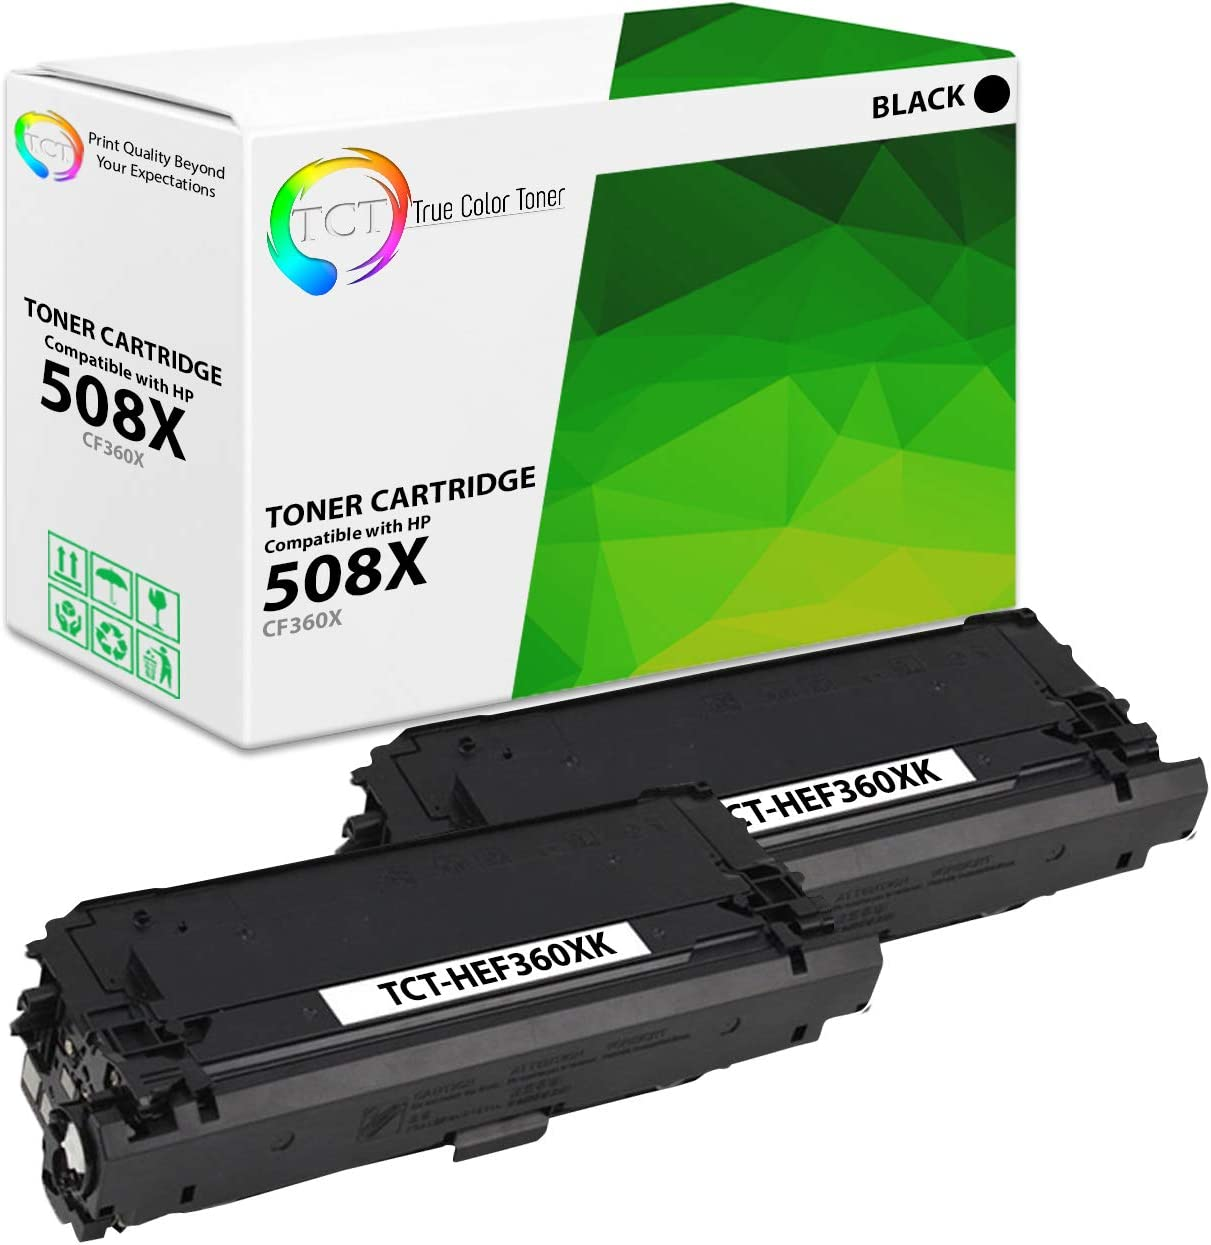 12,500 Pages TCT Premium Compatible Toner Cartridge Replacement for HP 508X CF360X Black High Yield Works with HP Color Laserjet Enterprise M552 M553 MFP M577 Printers 2 Pack